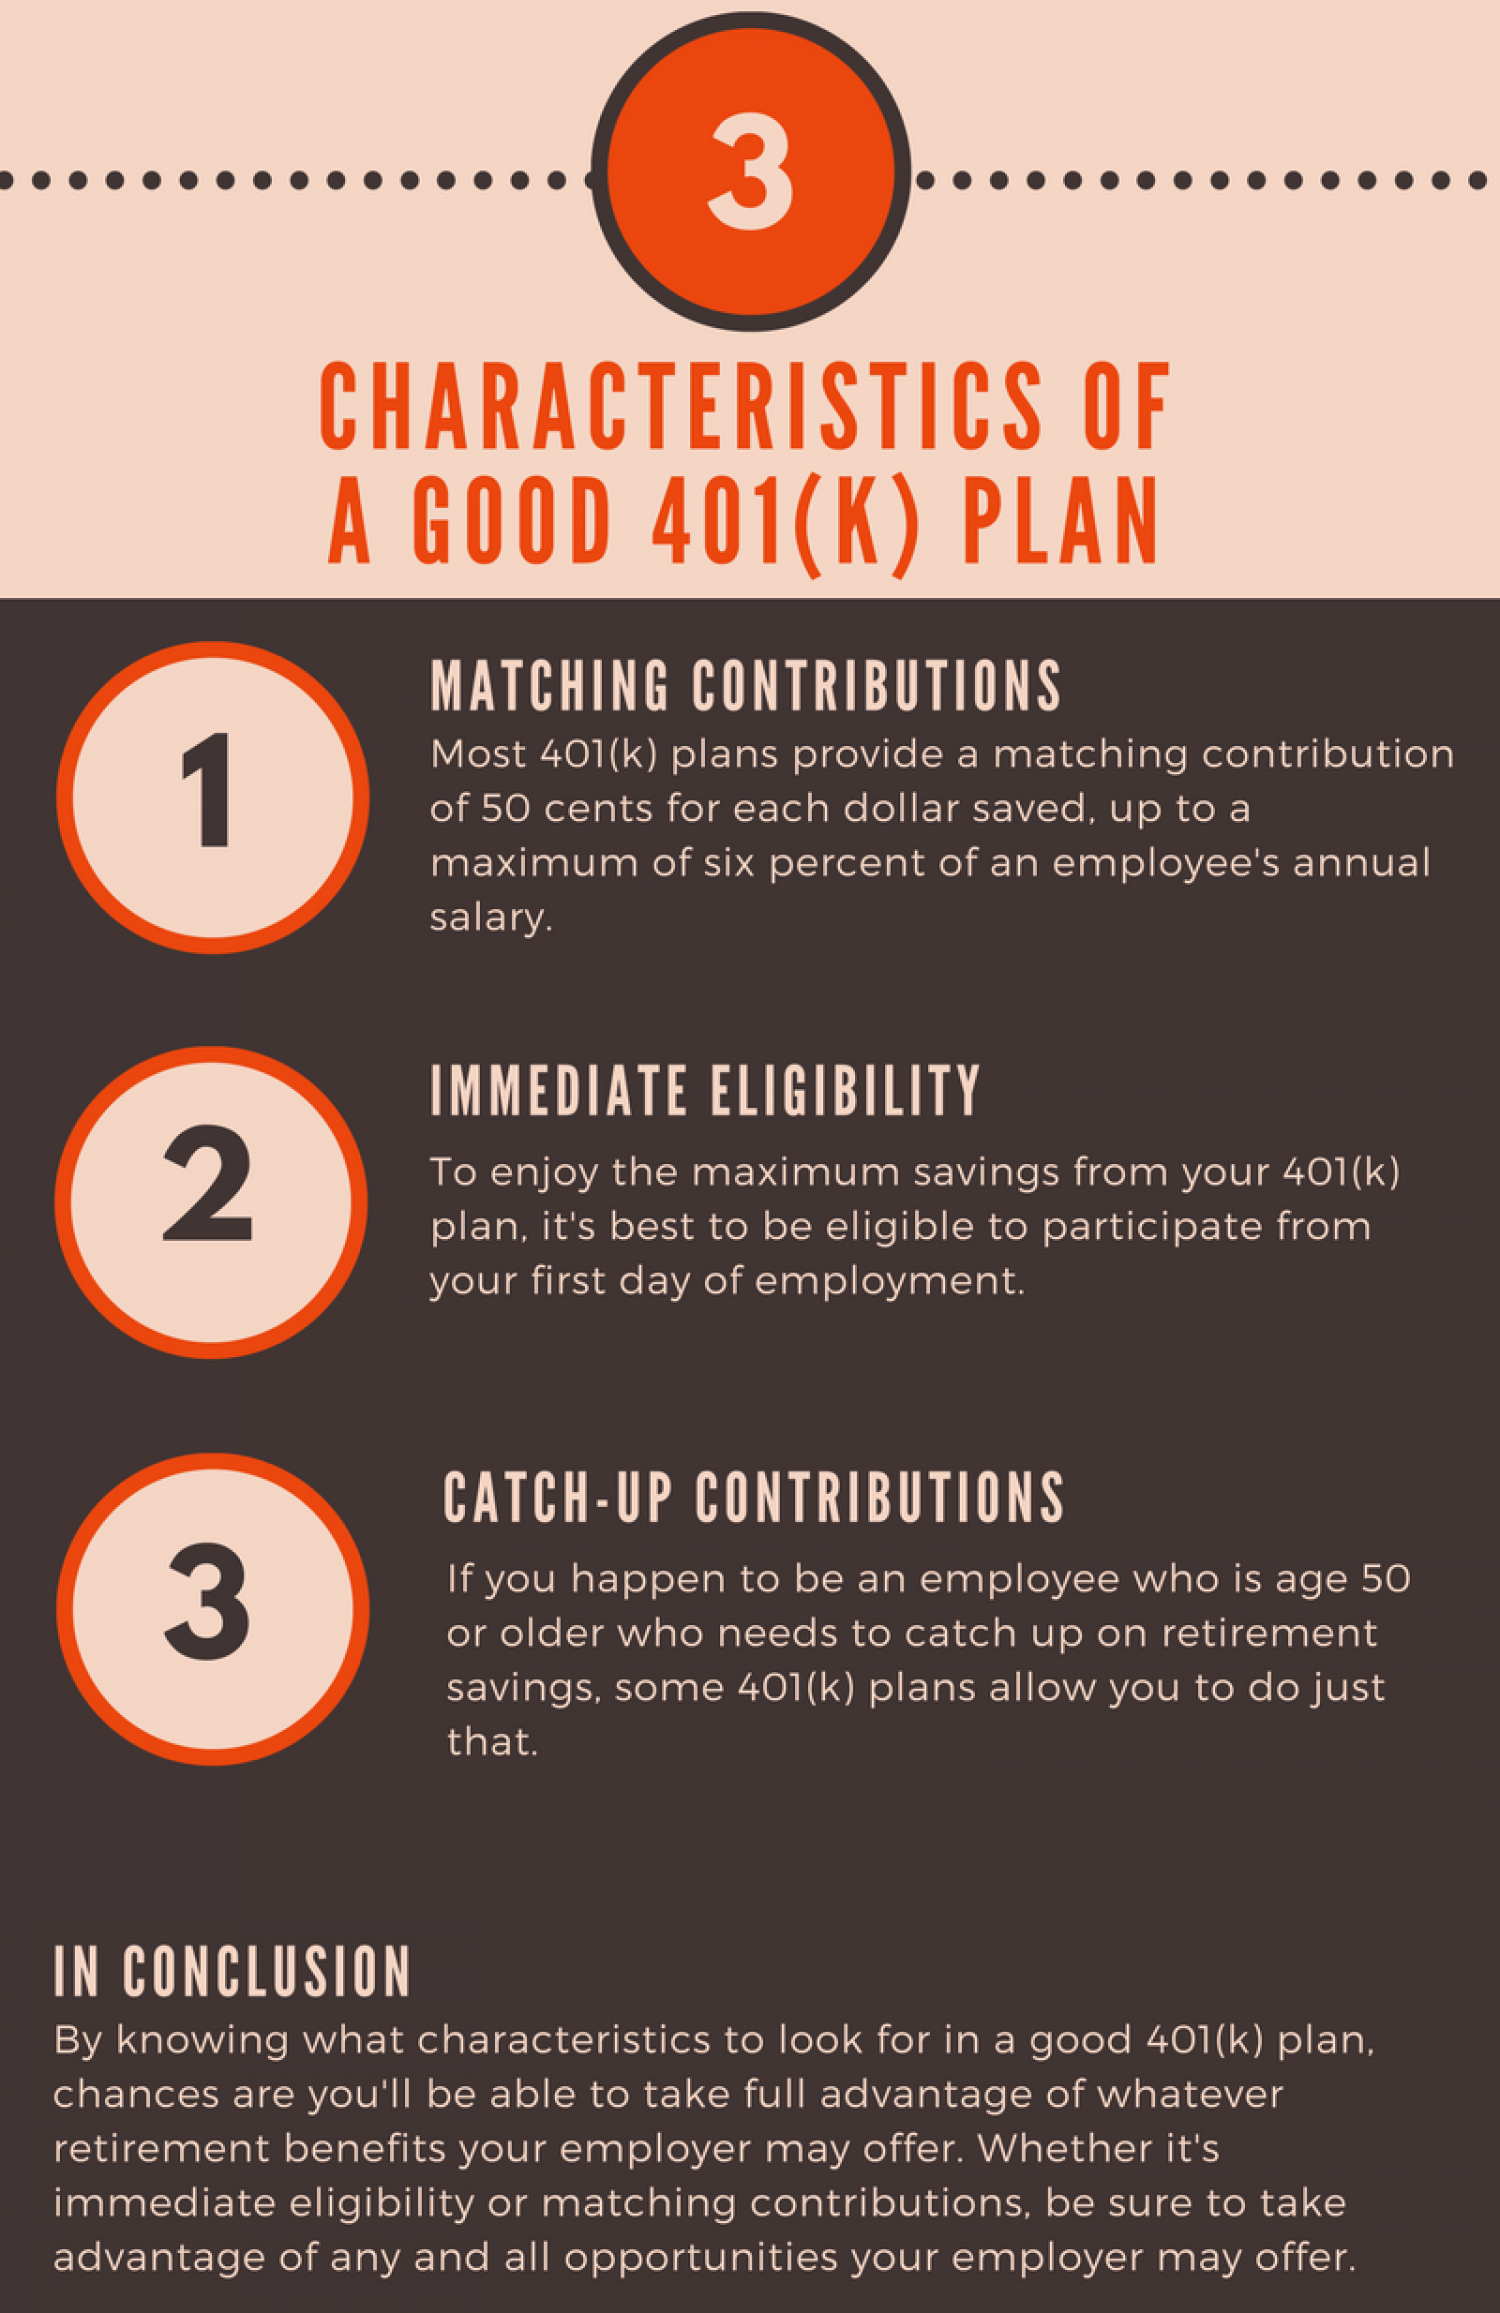 3 characteristics of a good 401 k plan visual ly